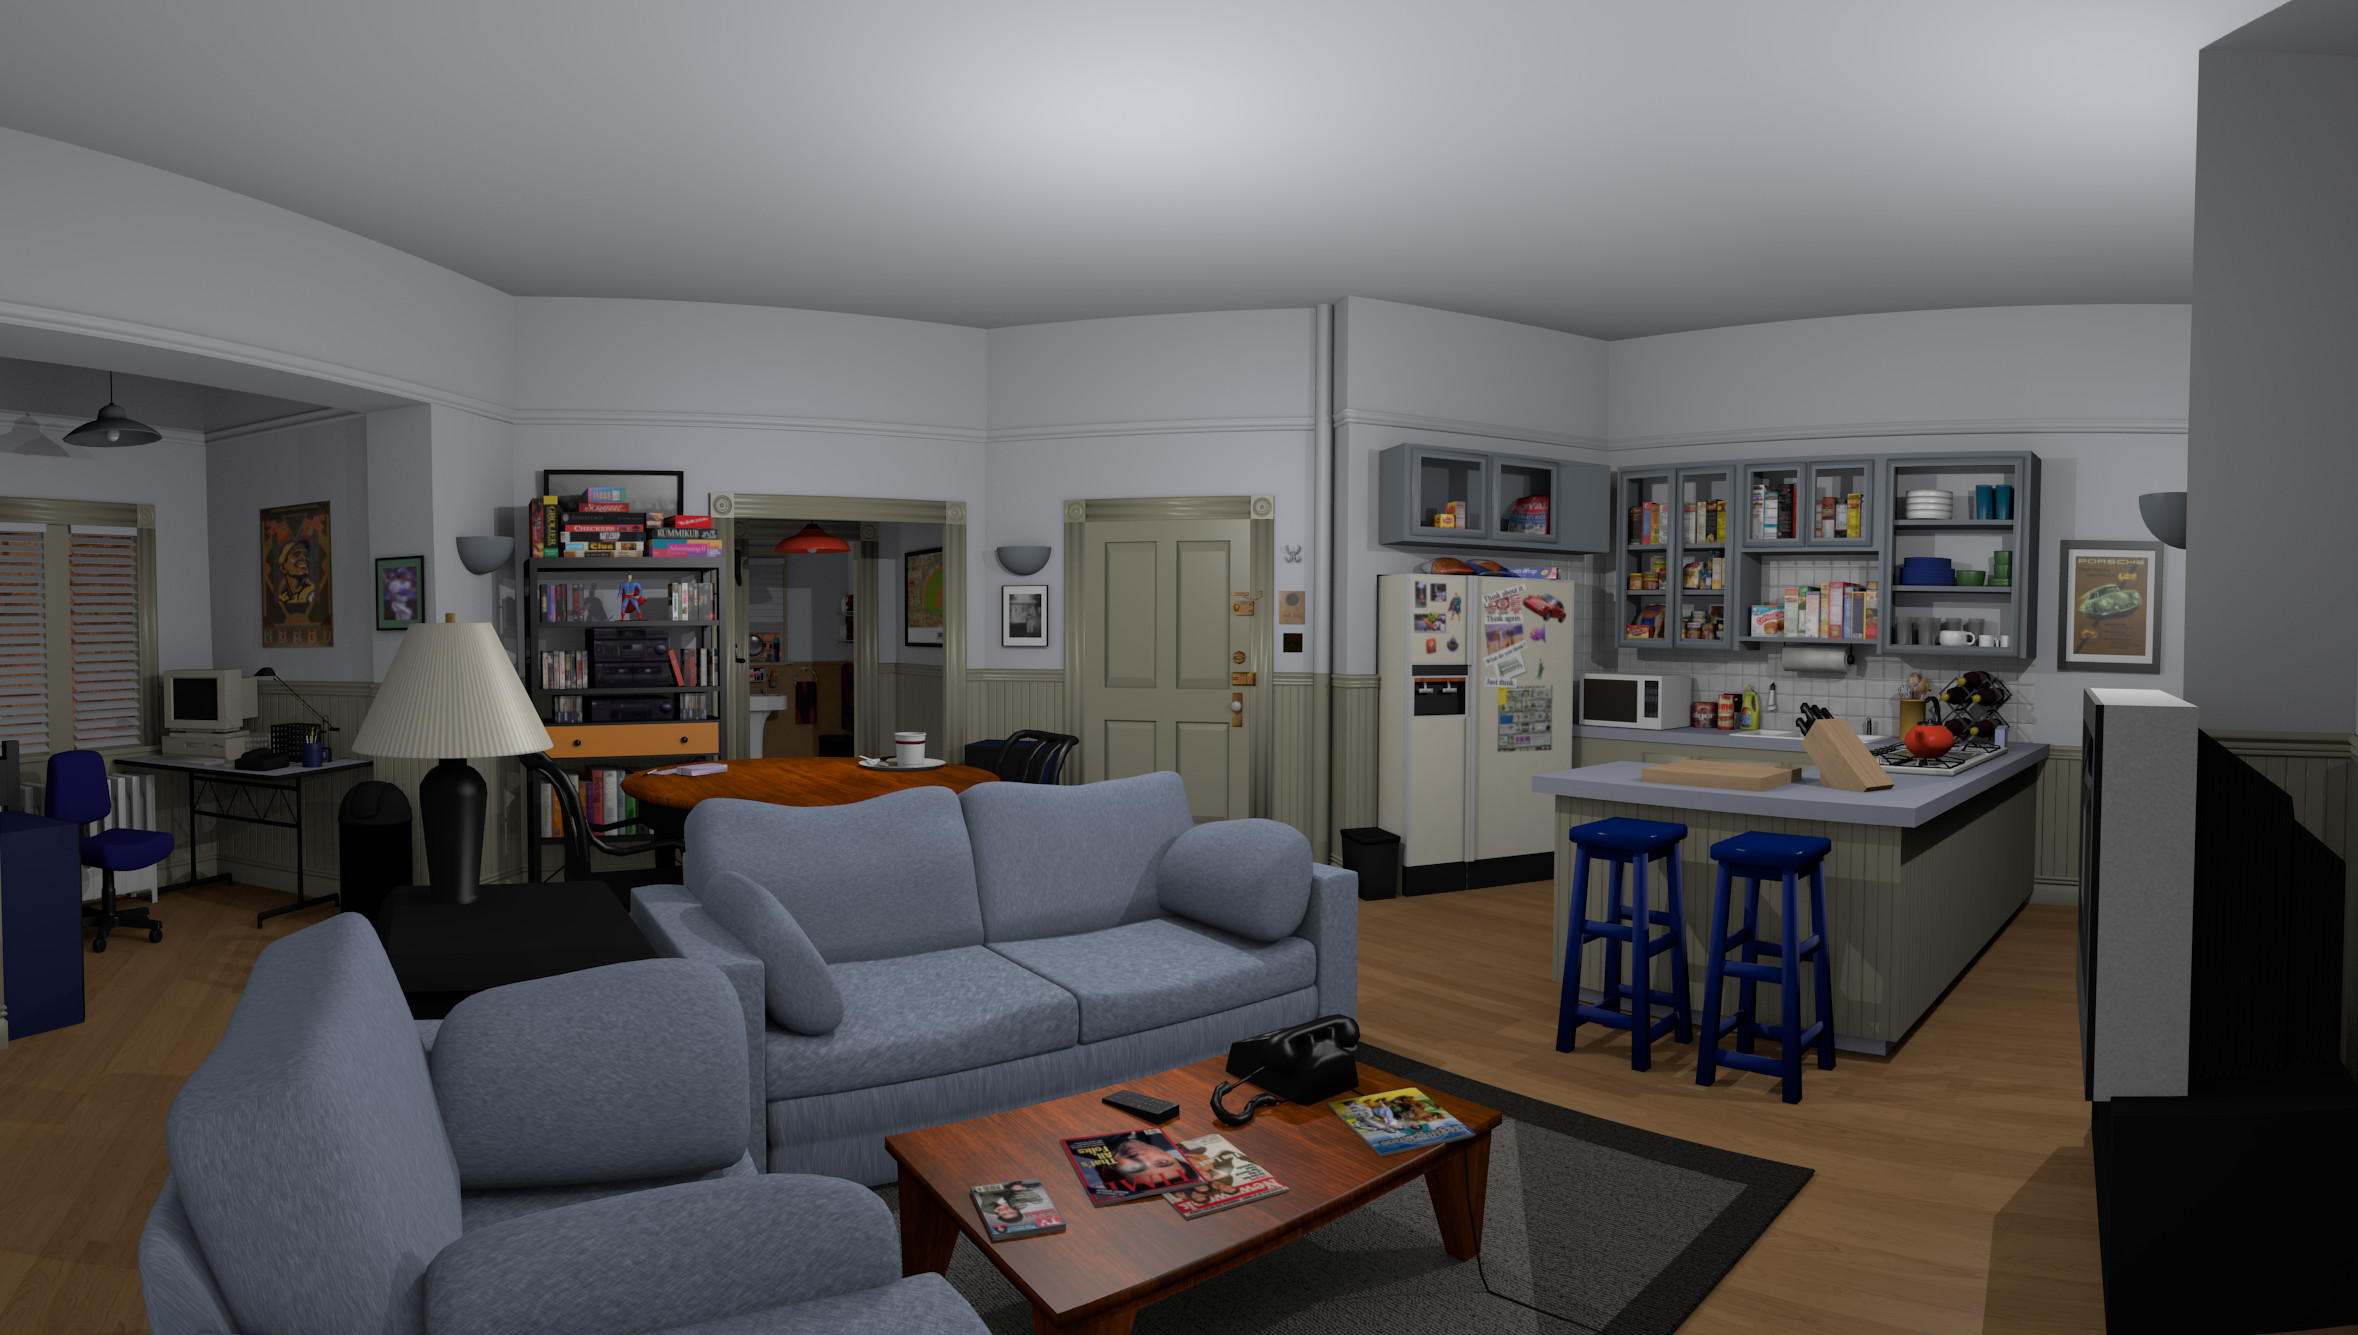 TV Shows By Living Room Quiz By Zippleton - Living room shows